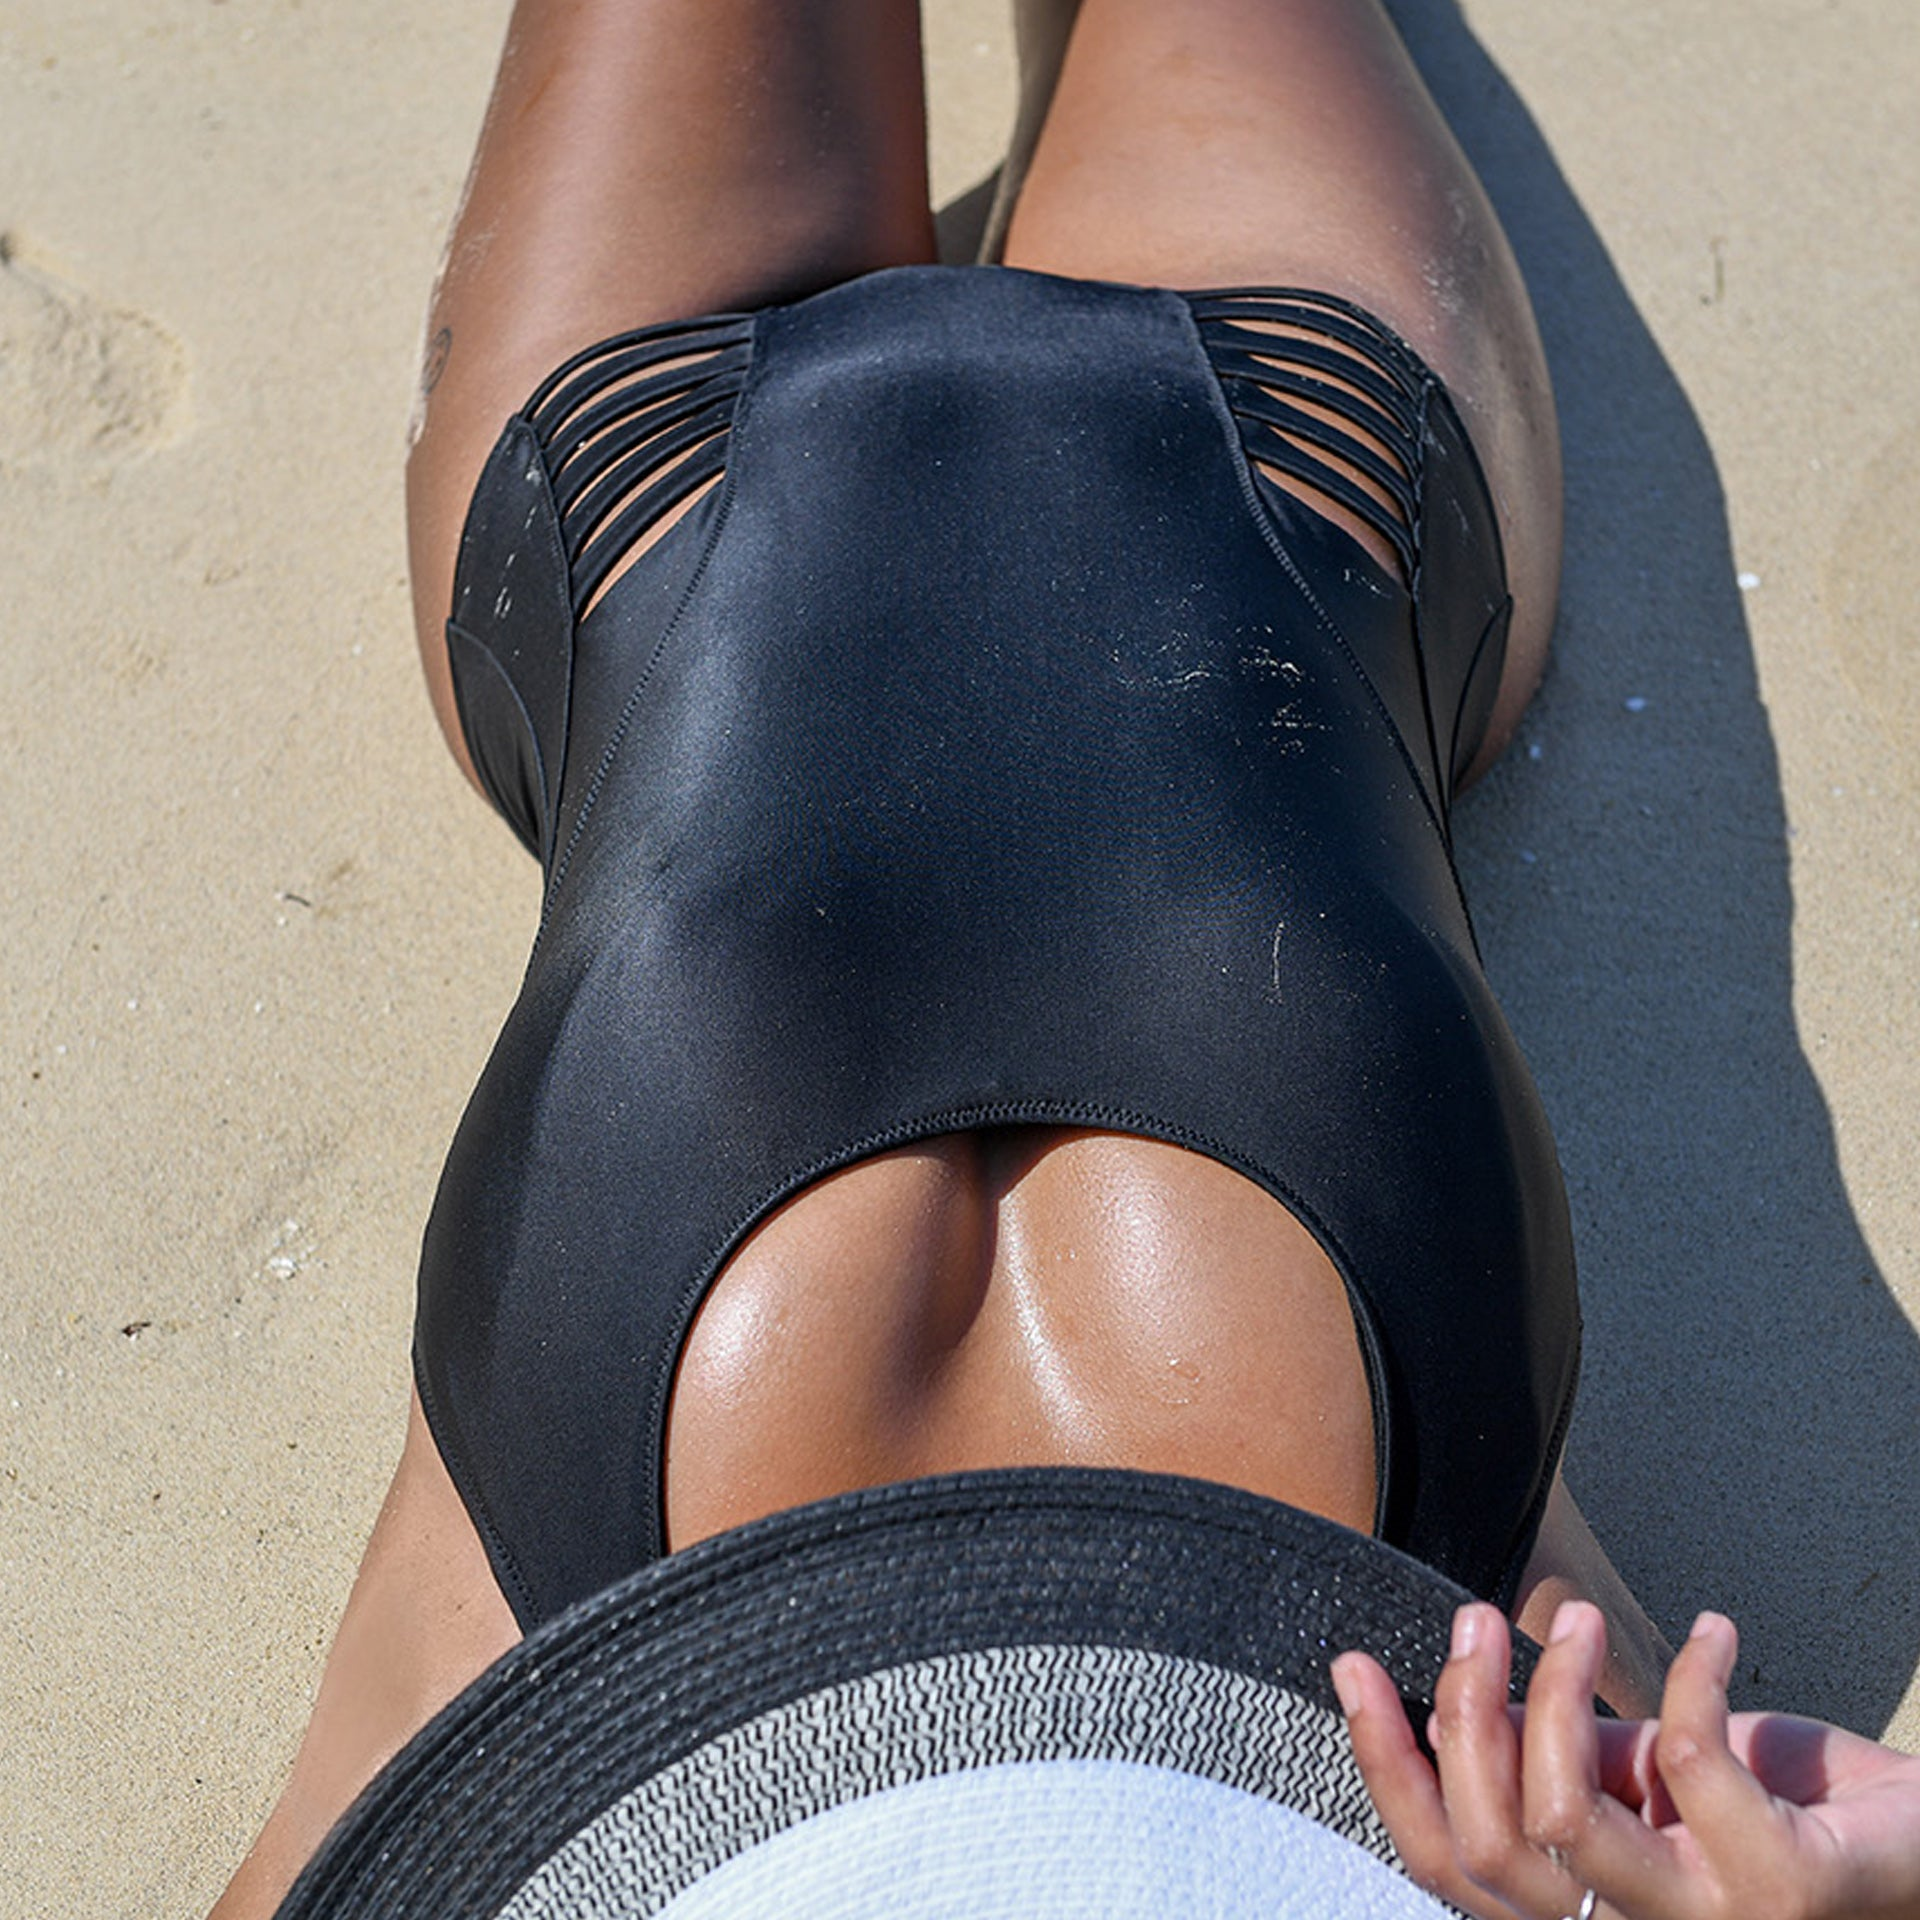 BELLS BEACH 1PC SWIMSUIT // BLACK - Nayali - Activewear for A-G Cup